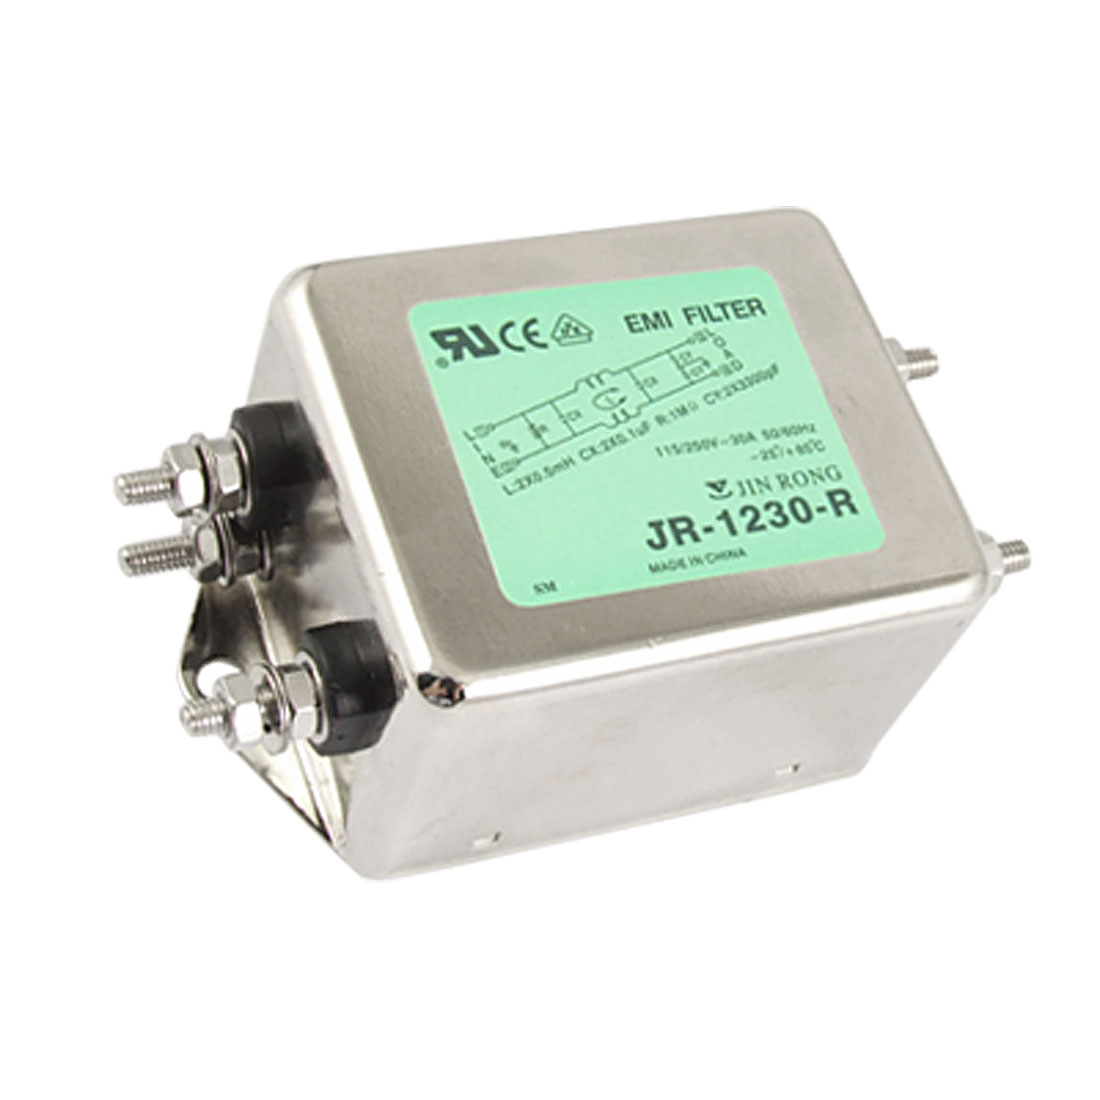 30A Rated Current AC 115/250V JR-1230-R Power Line EMI Filter